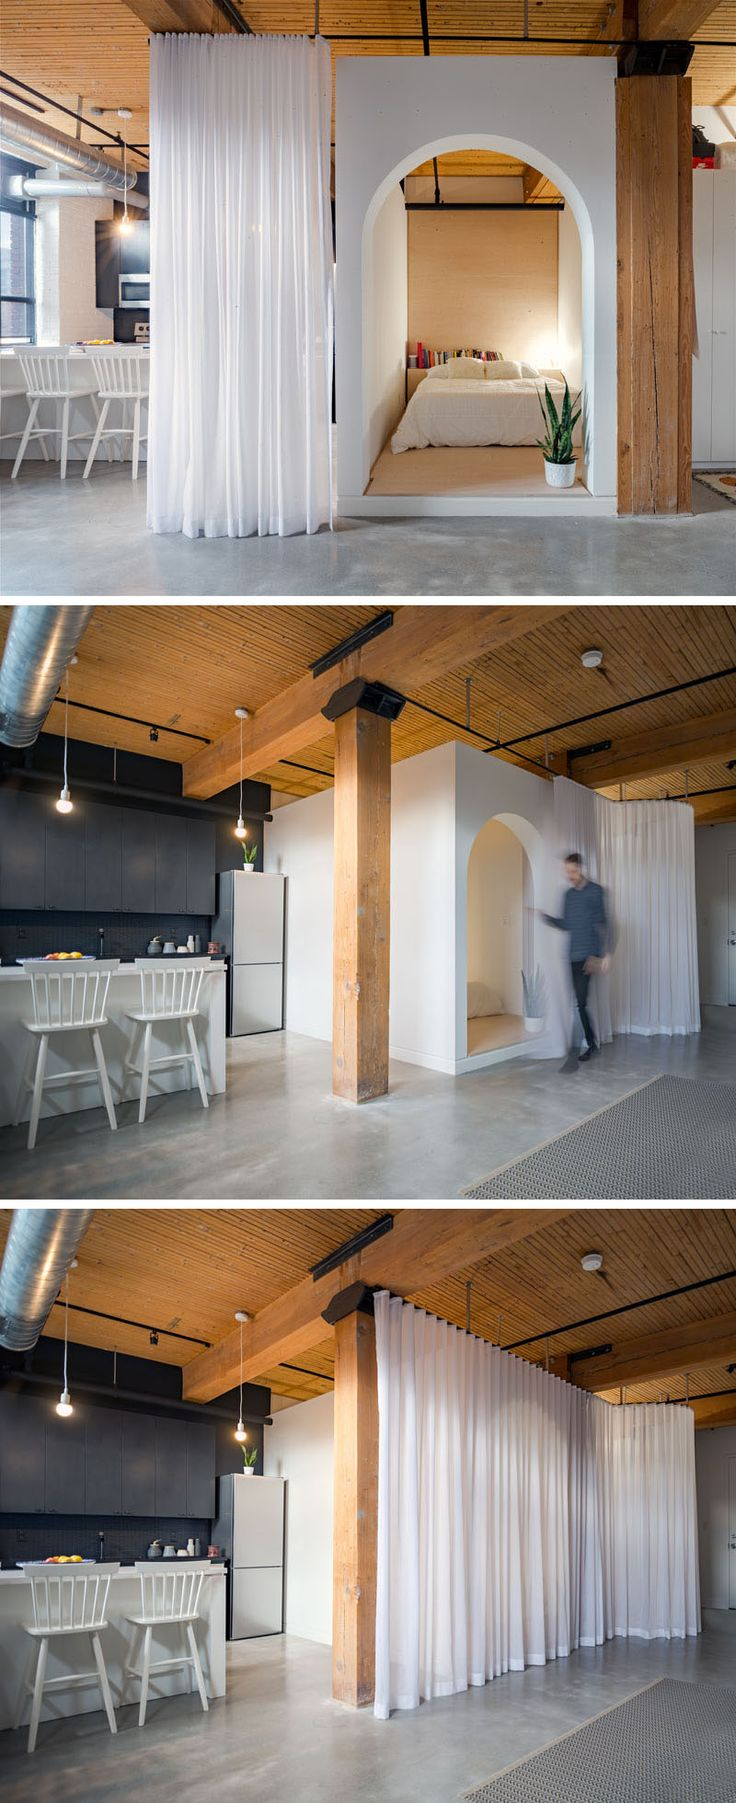 Best 25+ Modern lofts ideas on Pinterest | Modern loft, Loft style ...